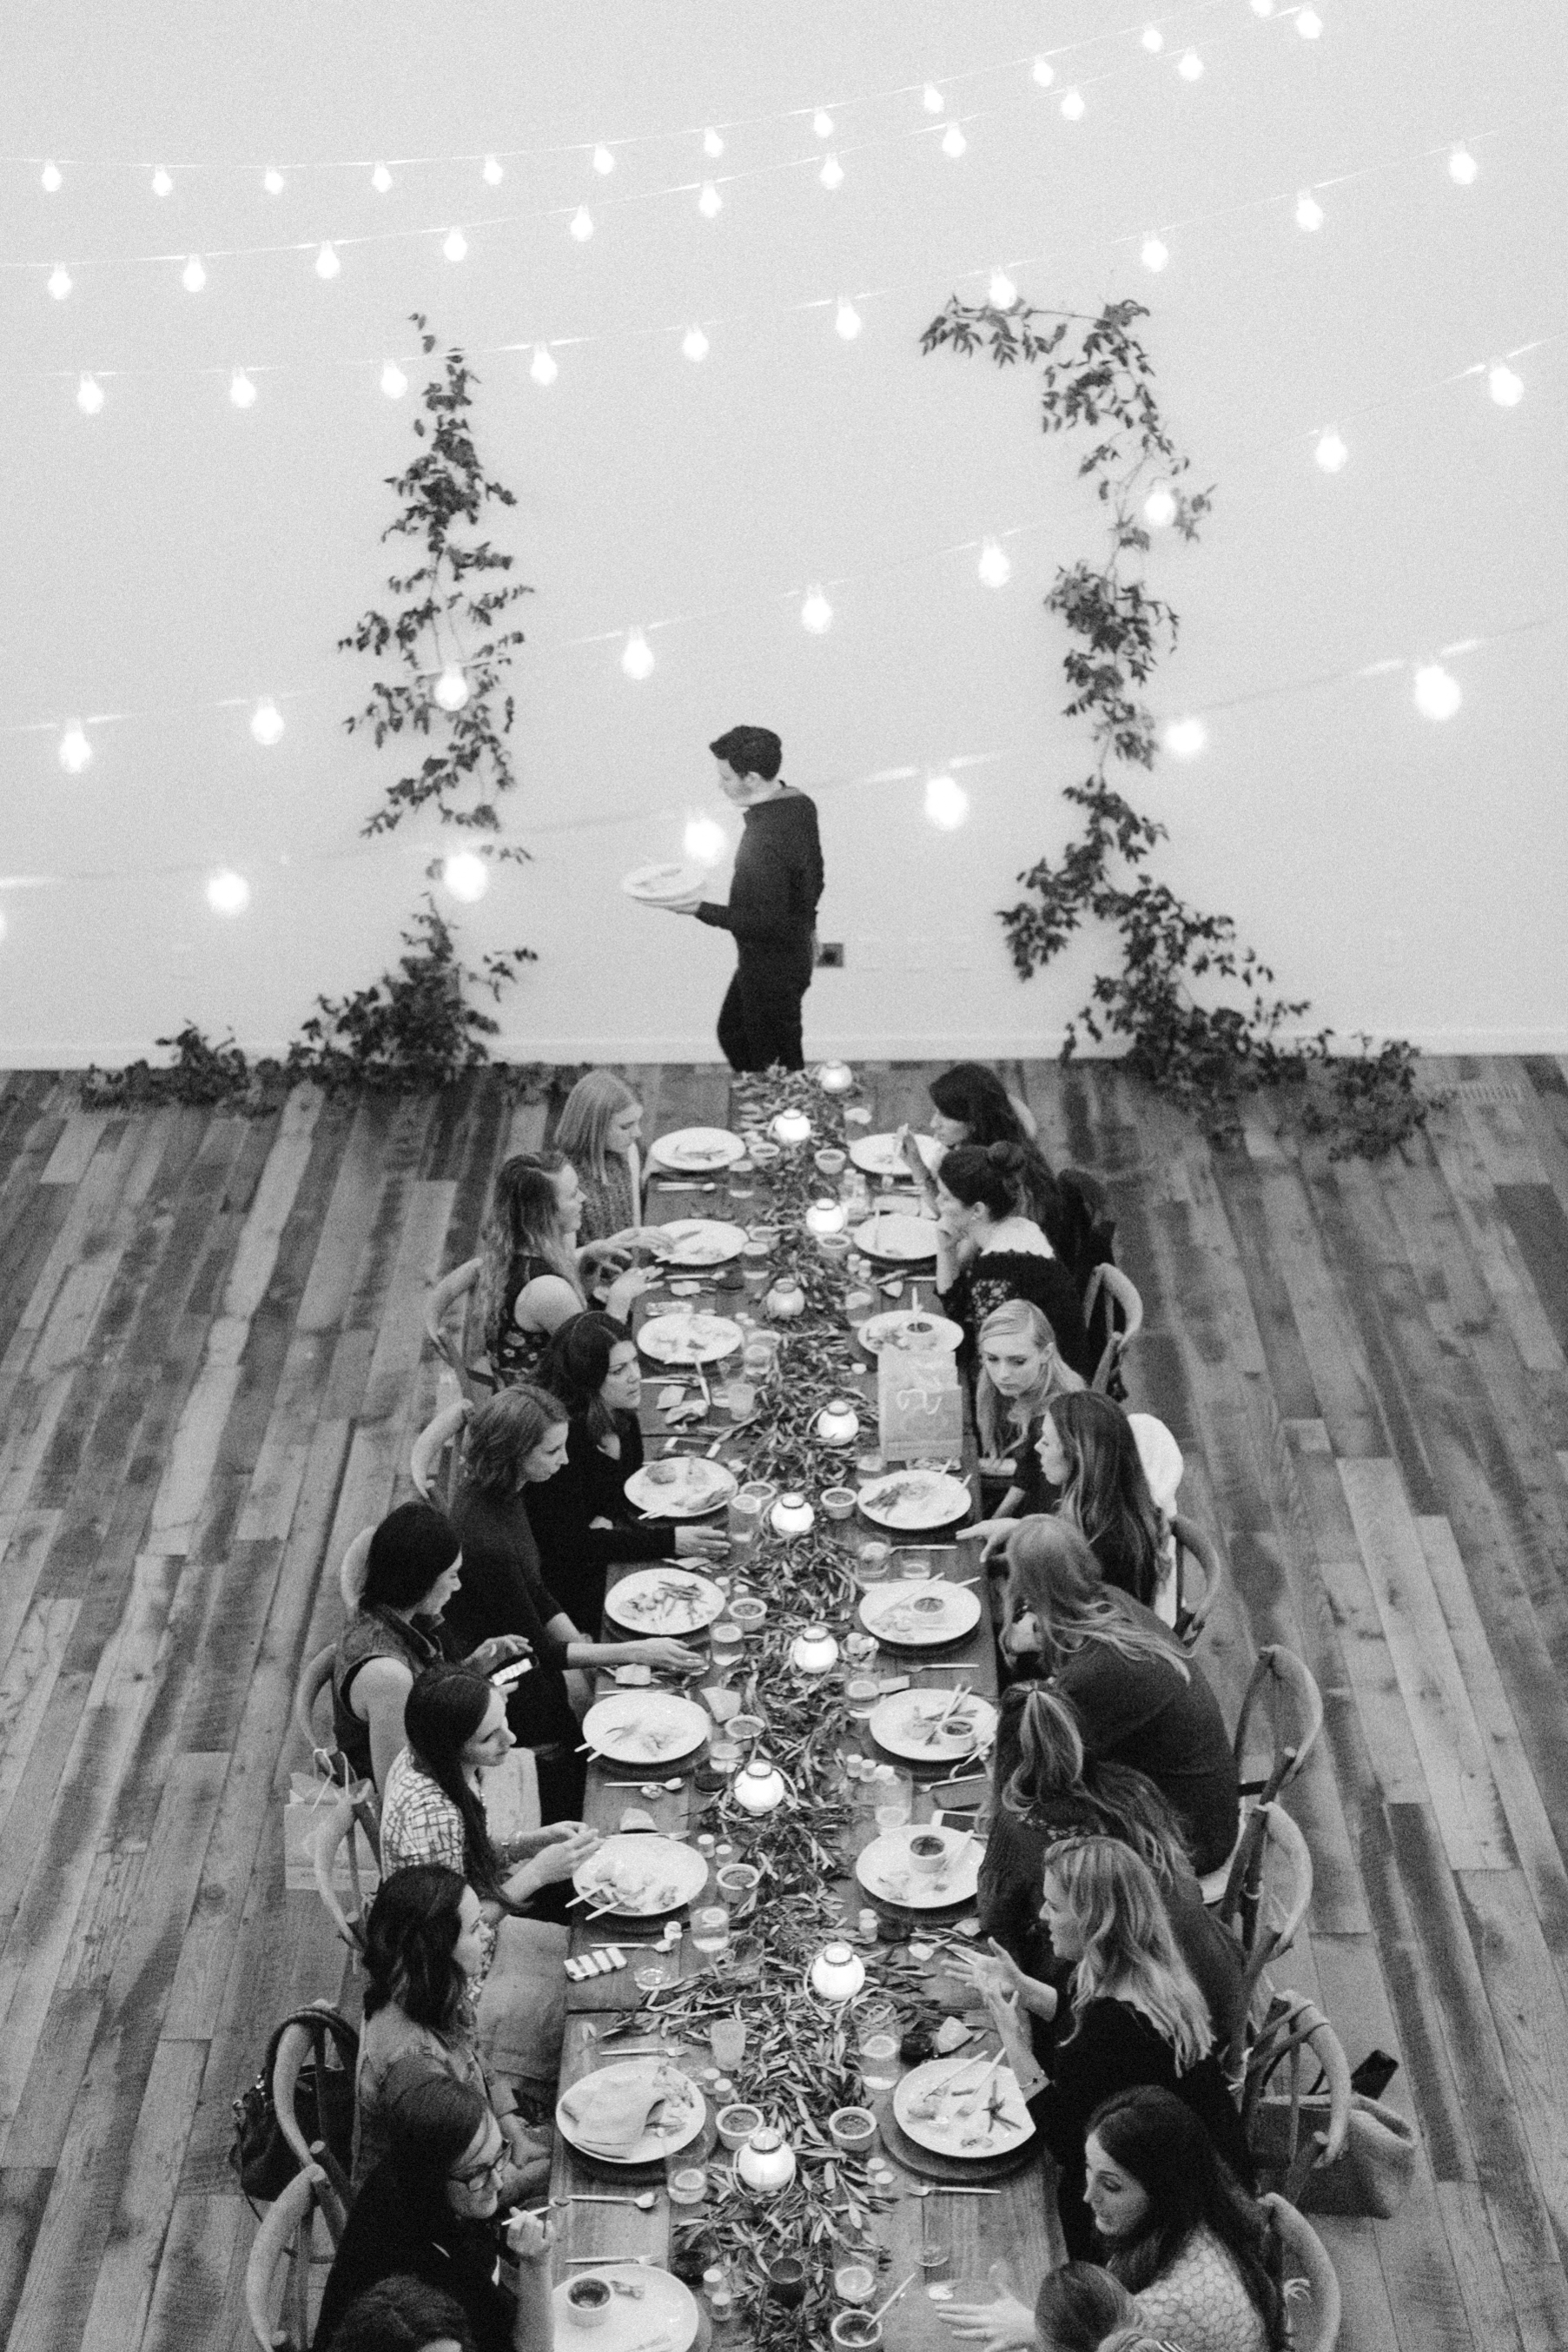 Family-style dinner party inspiration. The School of Styling Nashville - A three-day hands-on workshop for creative entrepreneurs. Photo by Love, the Nelsons. http://www.theschoolofstyling.com